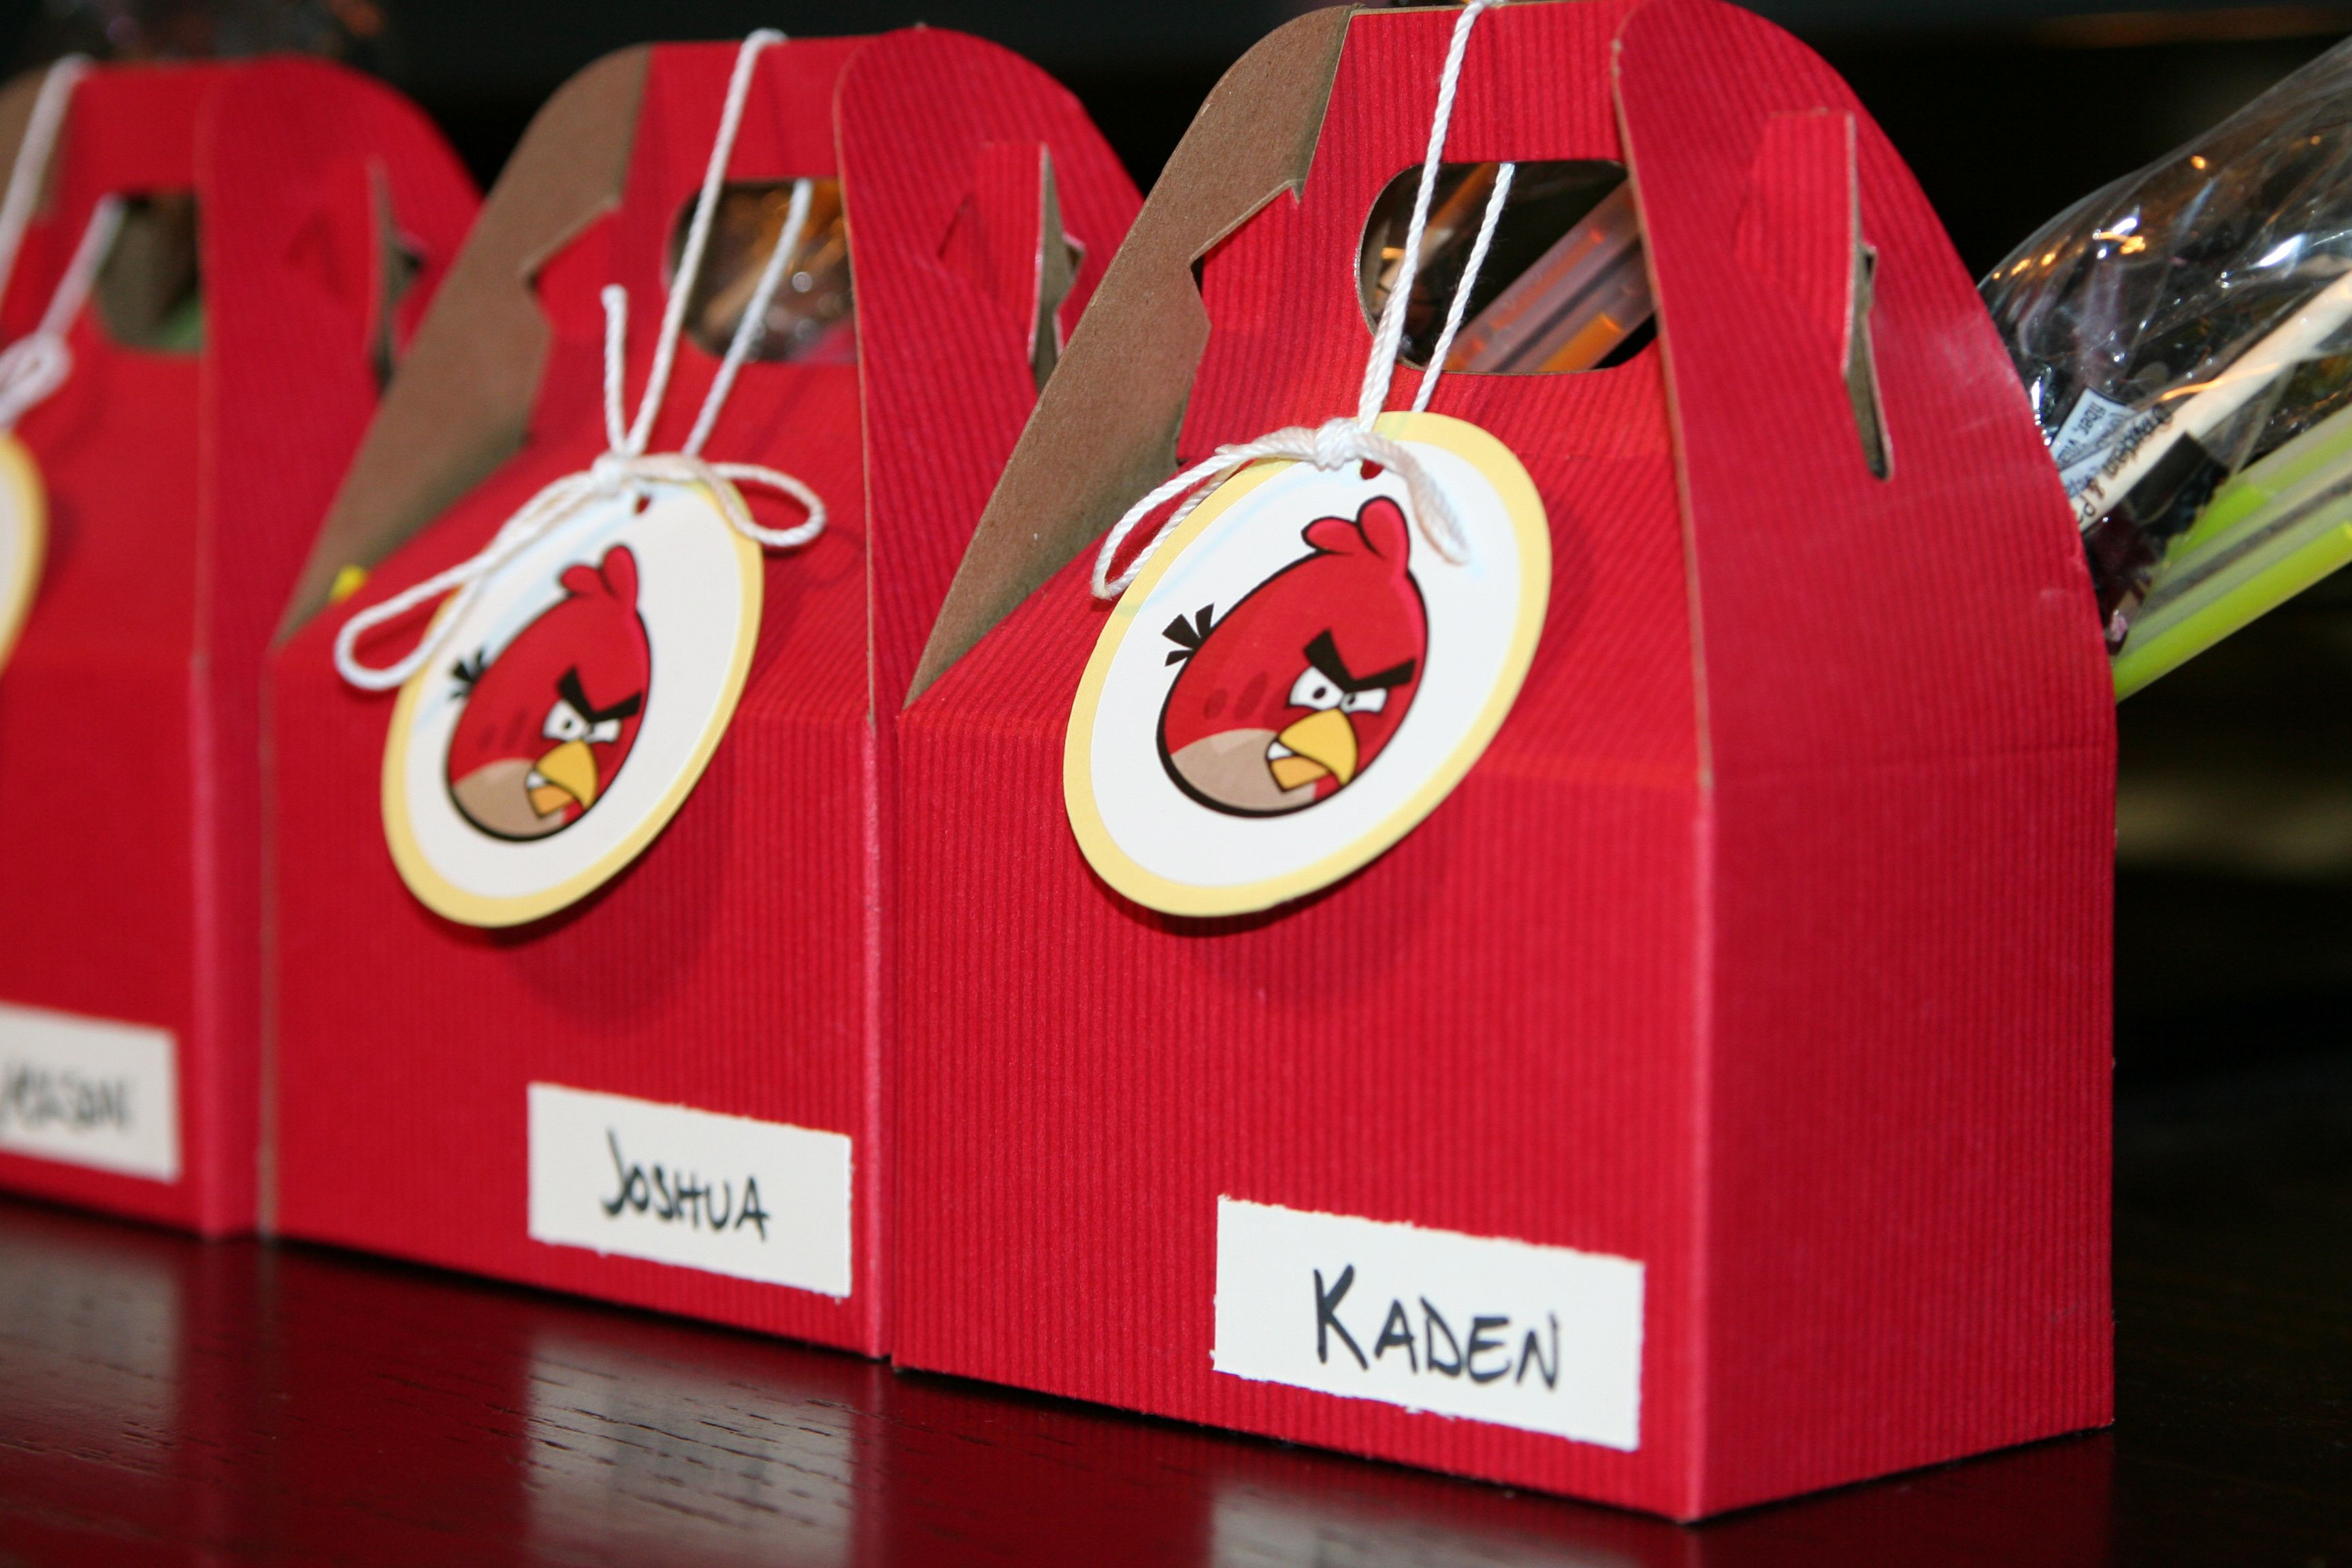 Angry Bird gift boxes